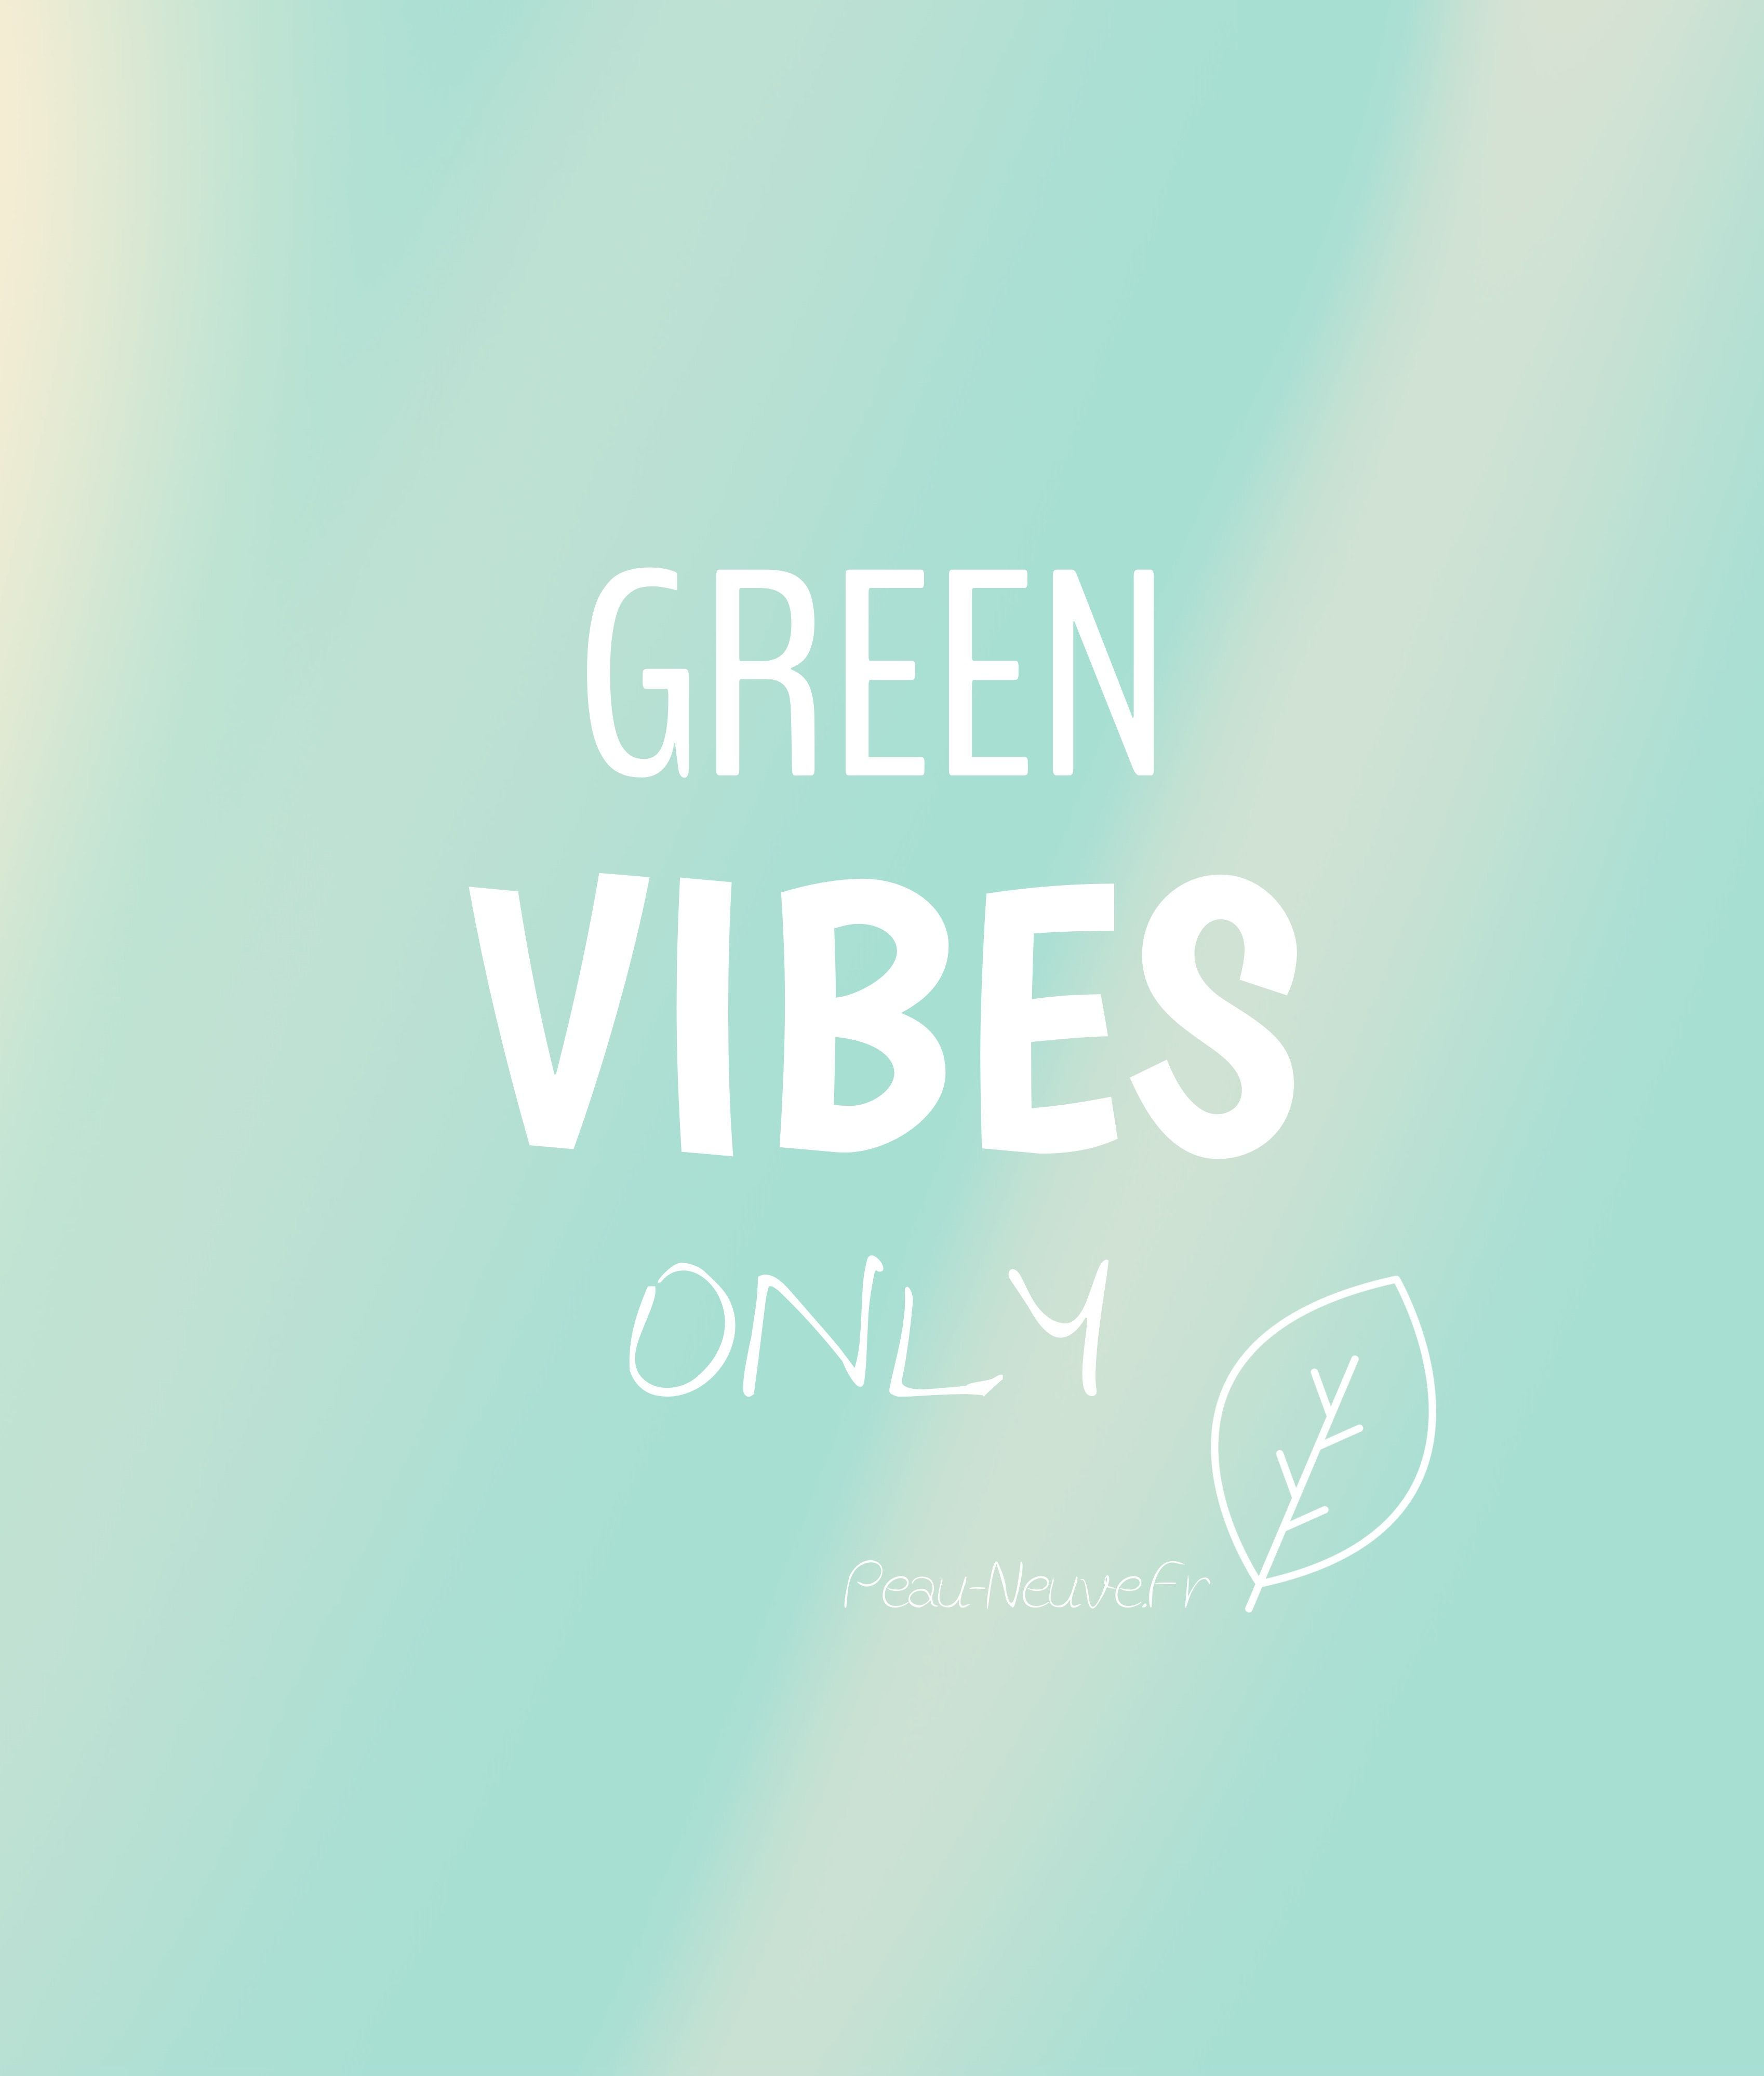 Green Vibes Only Citation Quote Peau Neuvefr Greens